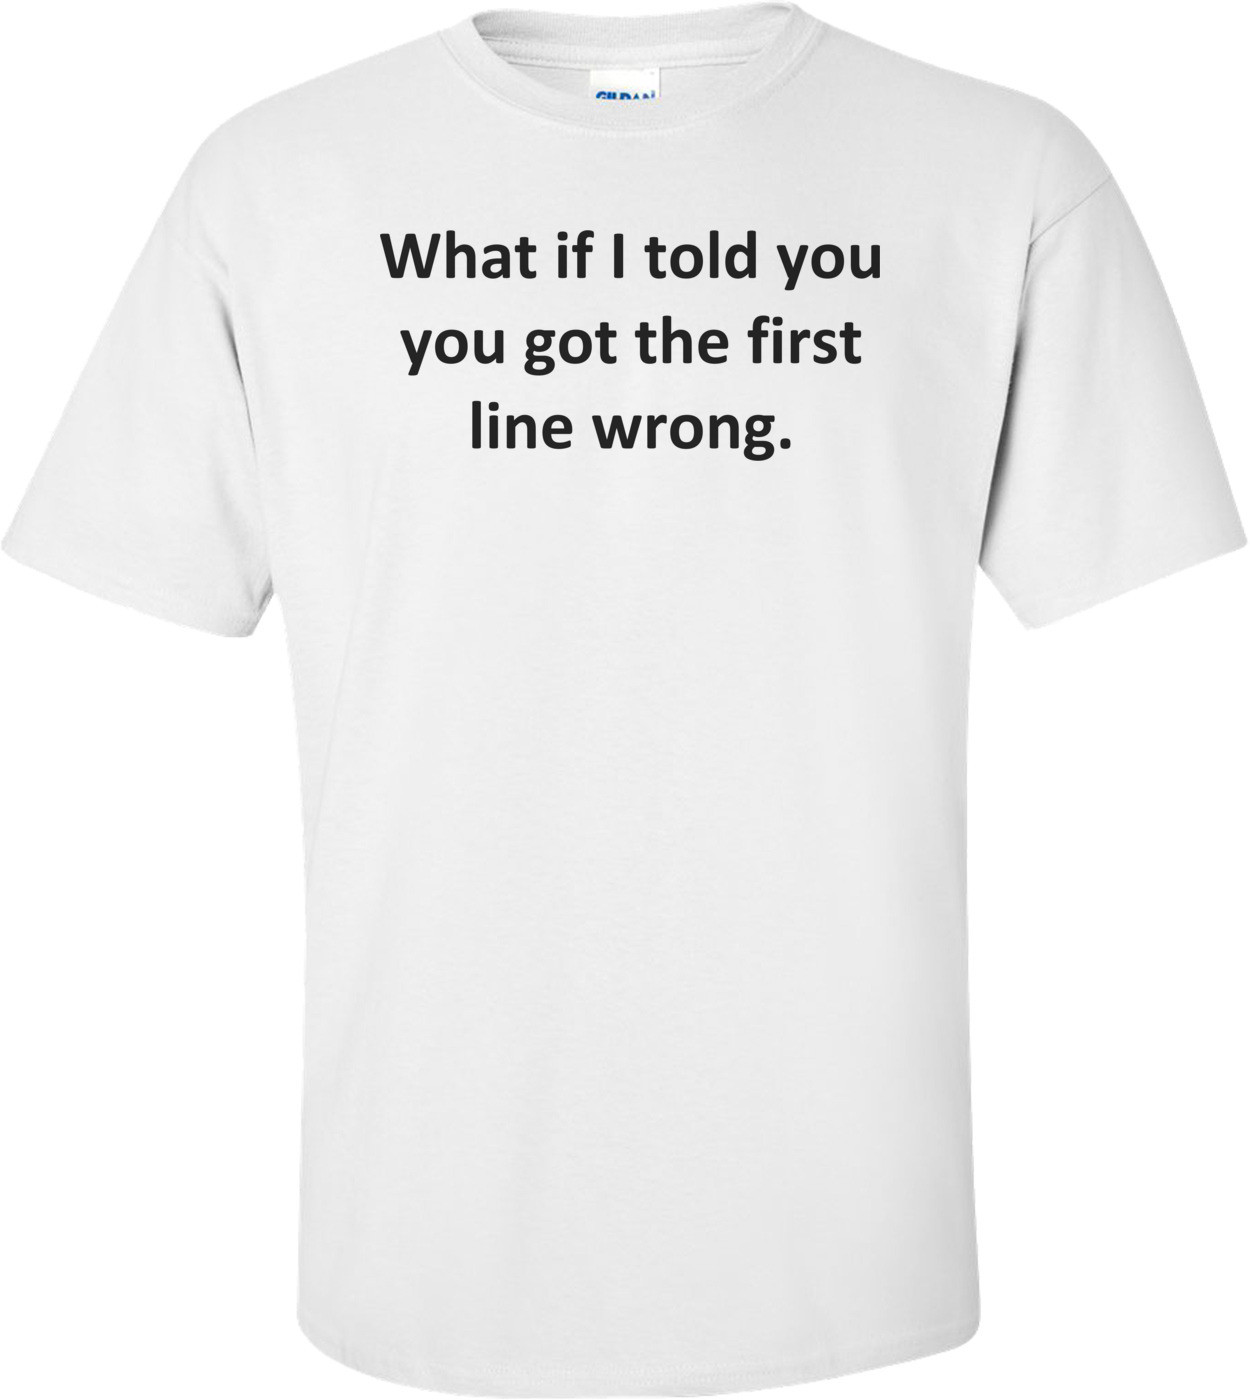 What if I told you you got the first line wrong. Shirt